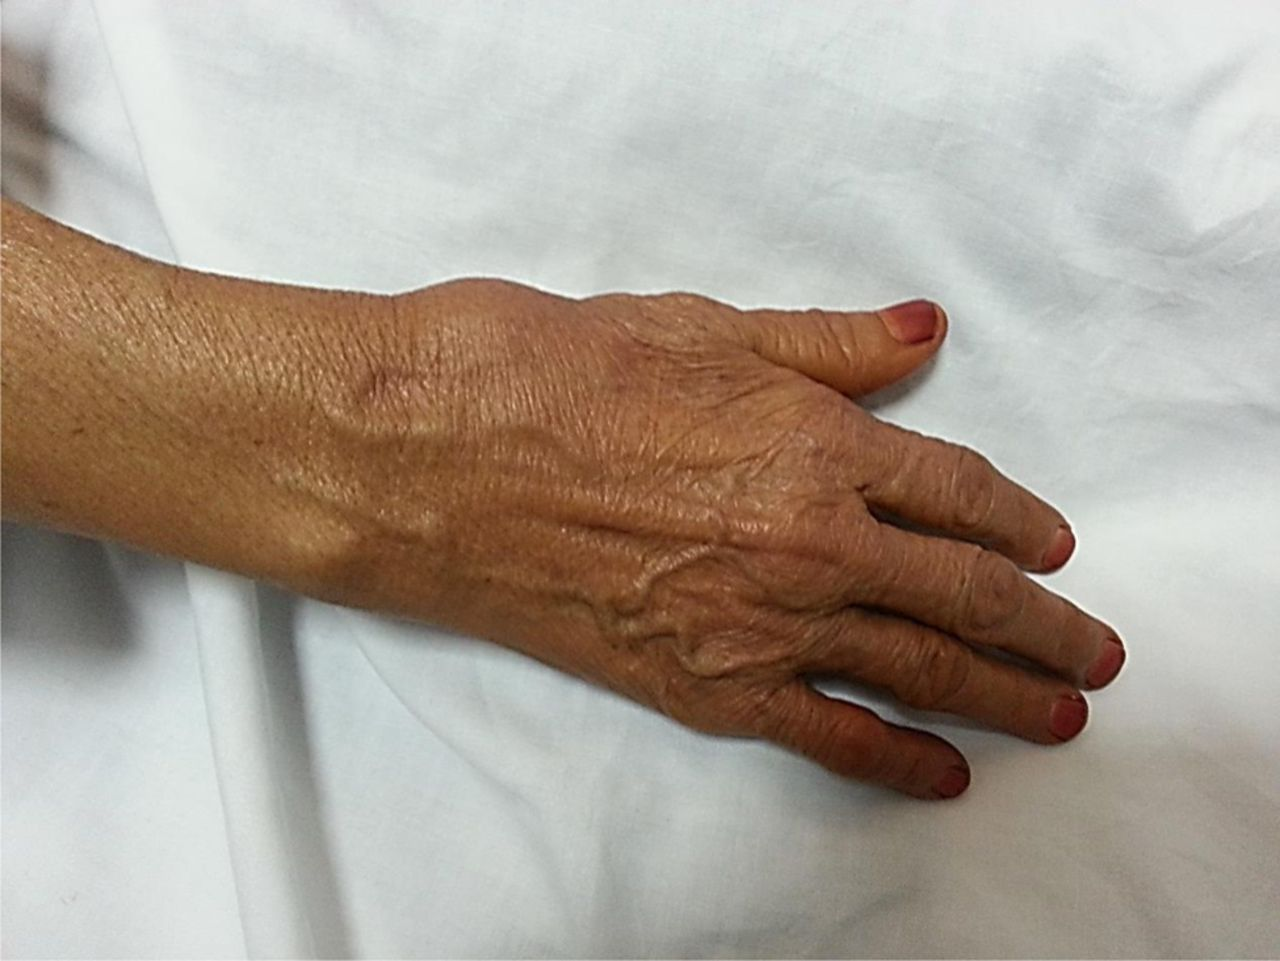 True Idiopathic Saccular Aneurysm Of The Radial Artery Journal Of